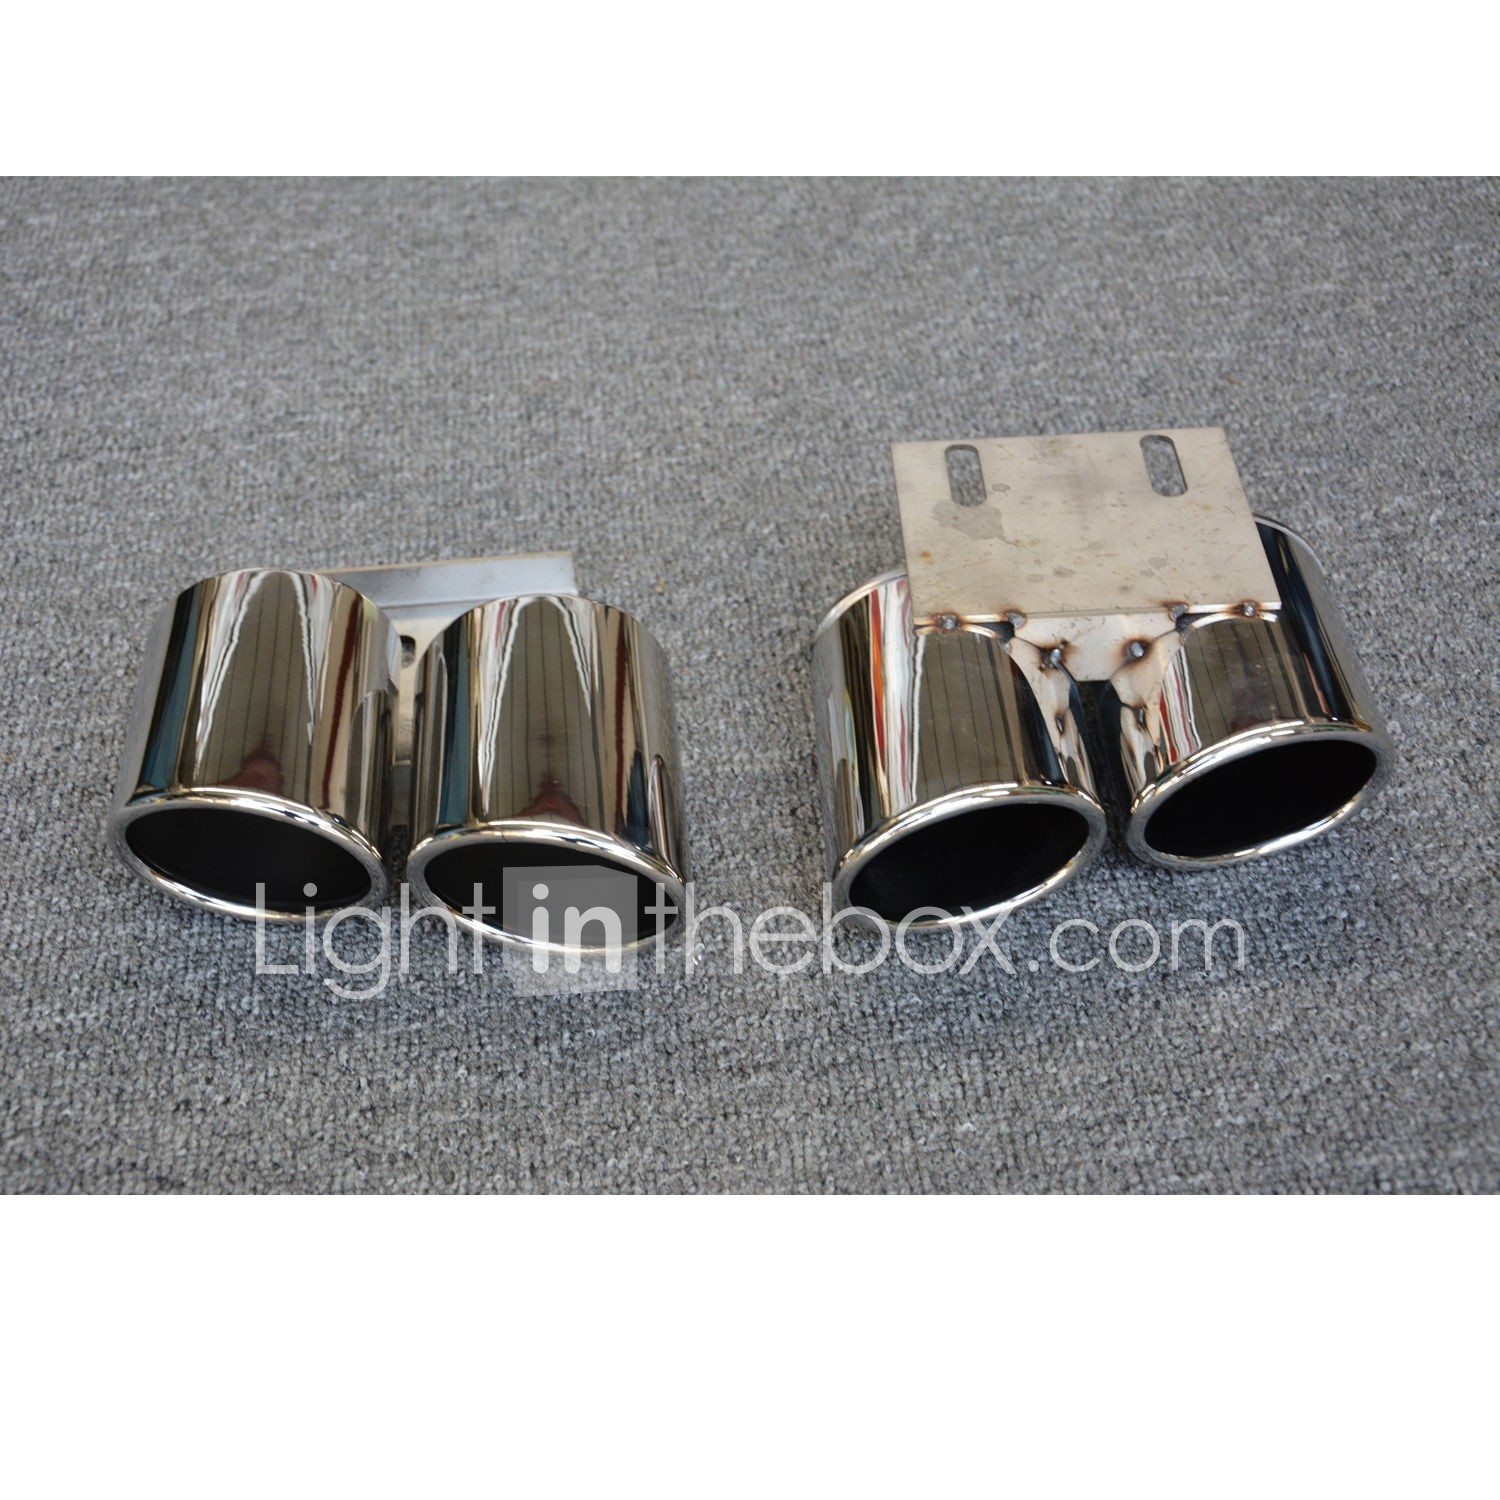 2pcs Car Exhaust Tailpipe Tips Cool Stainless steel Exhaust Mufflers For  Audi A3 2017